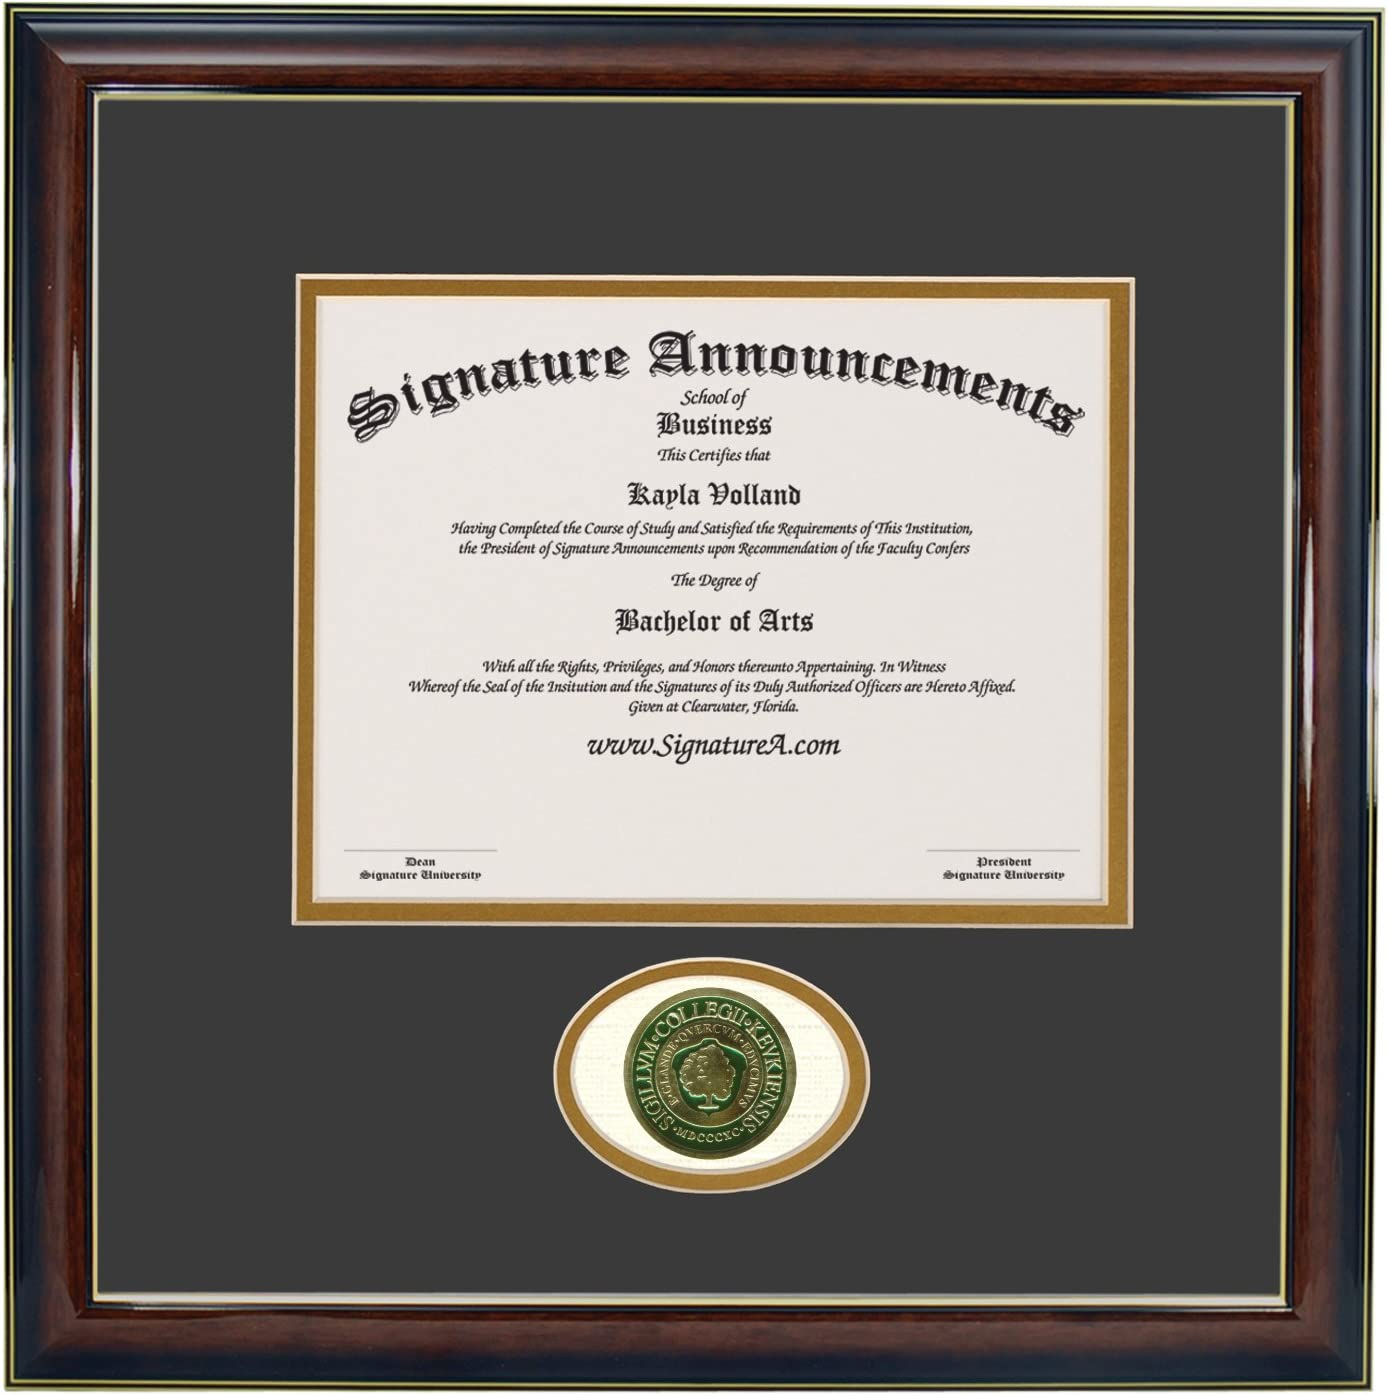 Signature Announcements Keuka-College Sculpted Foil Seal Graduation Diploma Frame 16 x 16 Gold Accent Gloss Mahogany